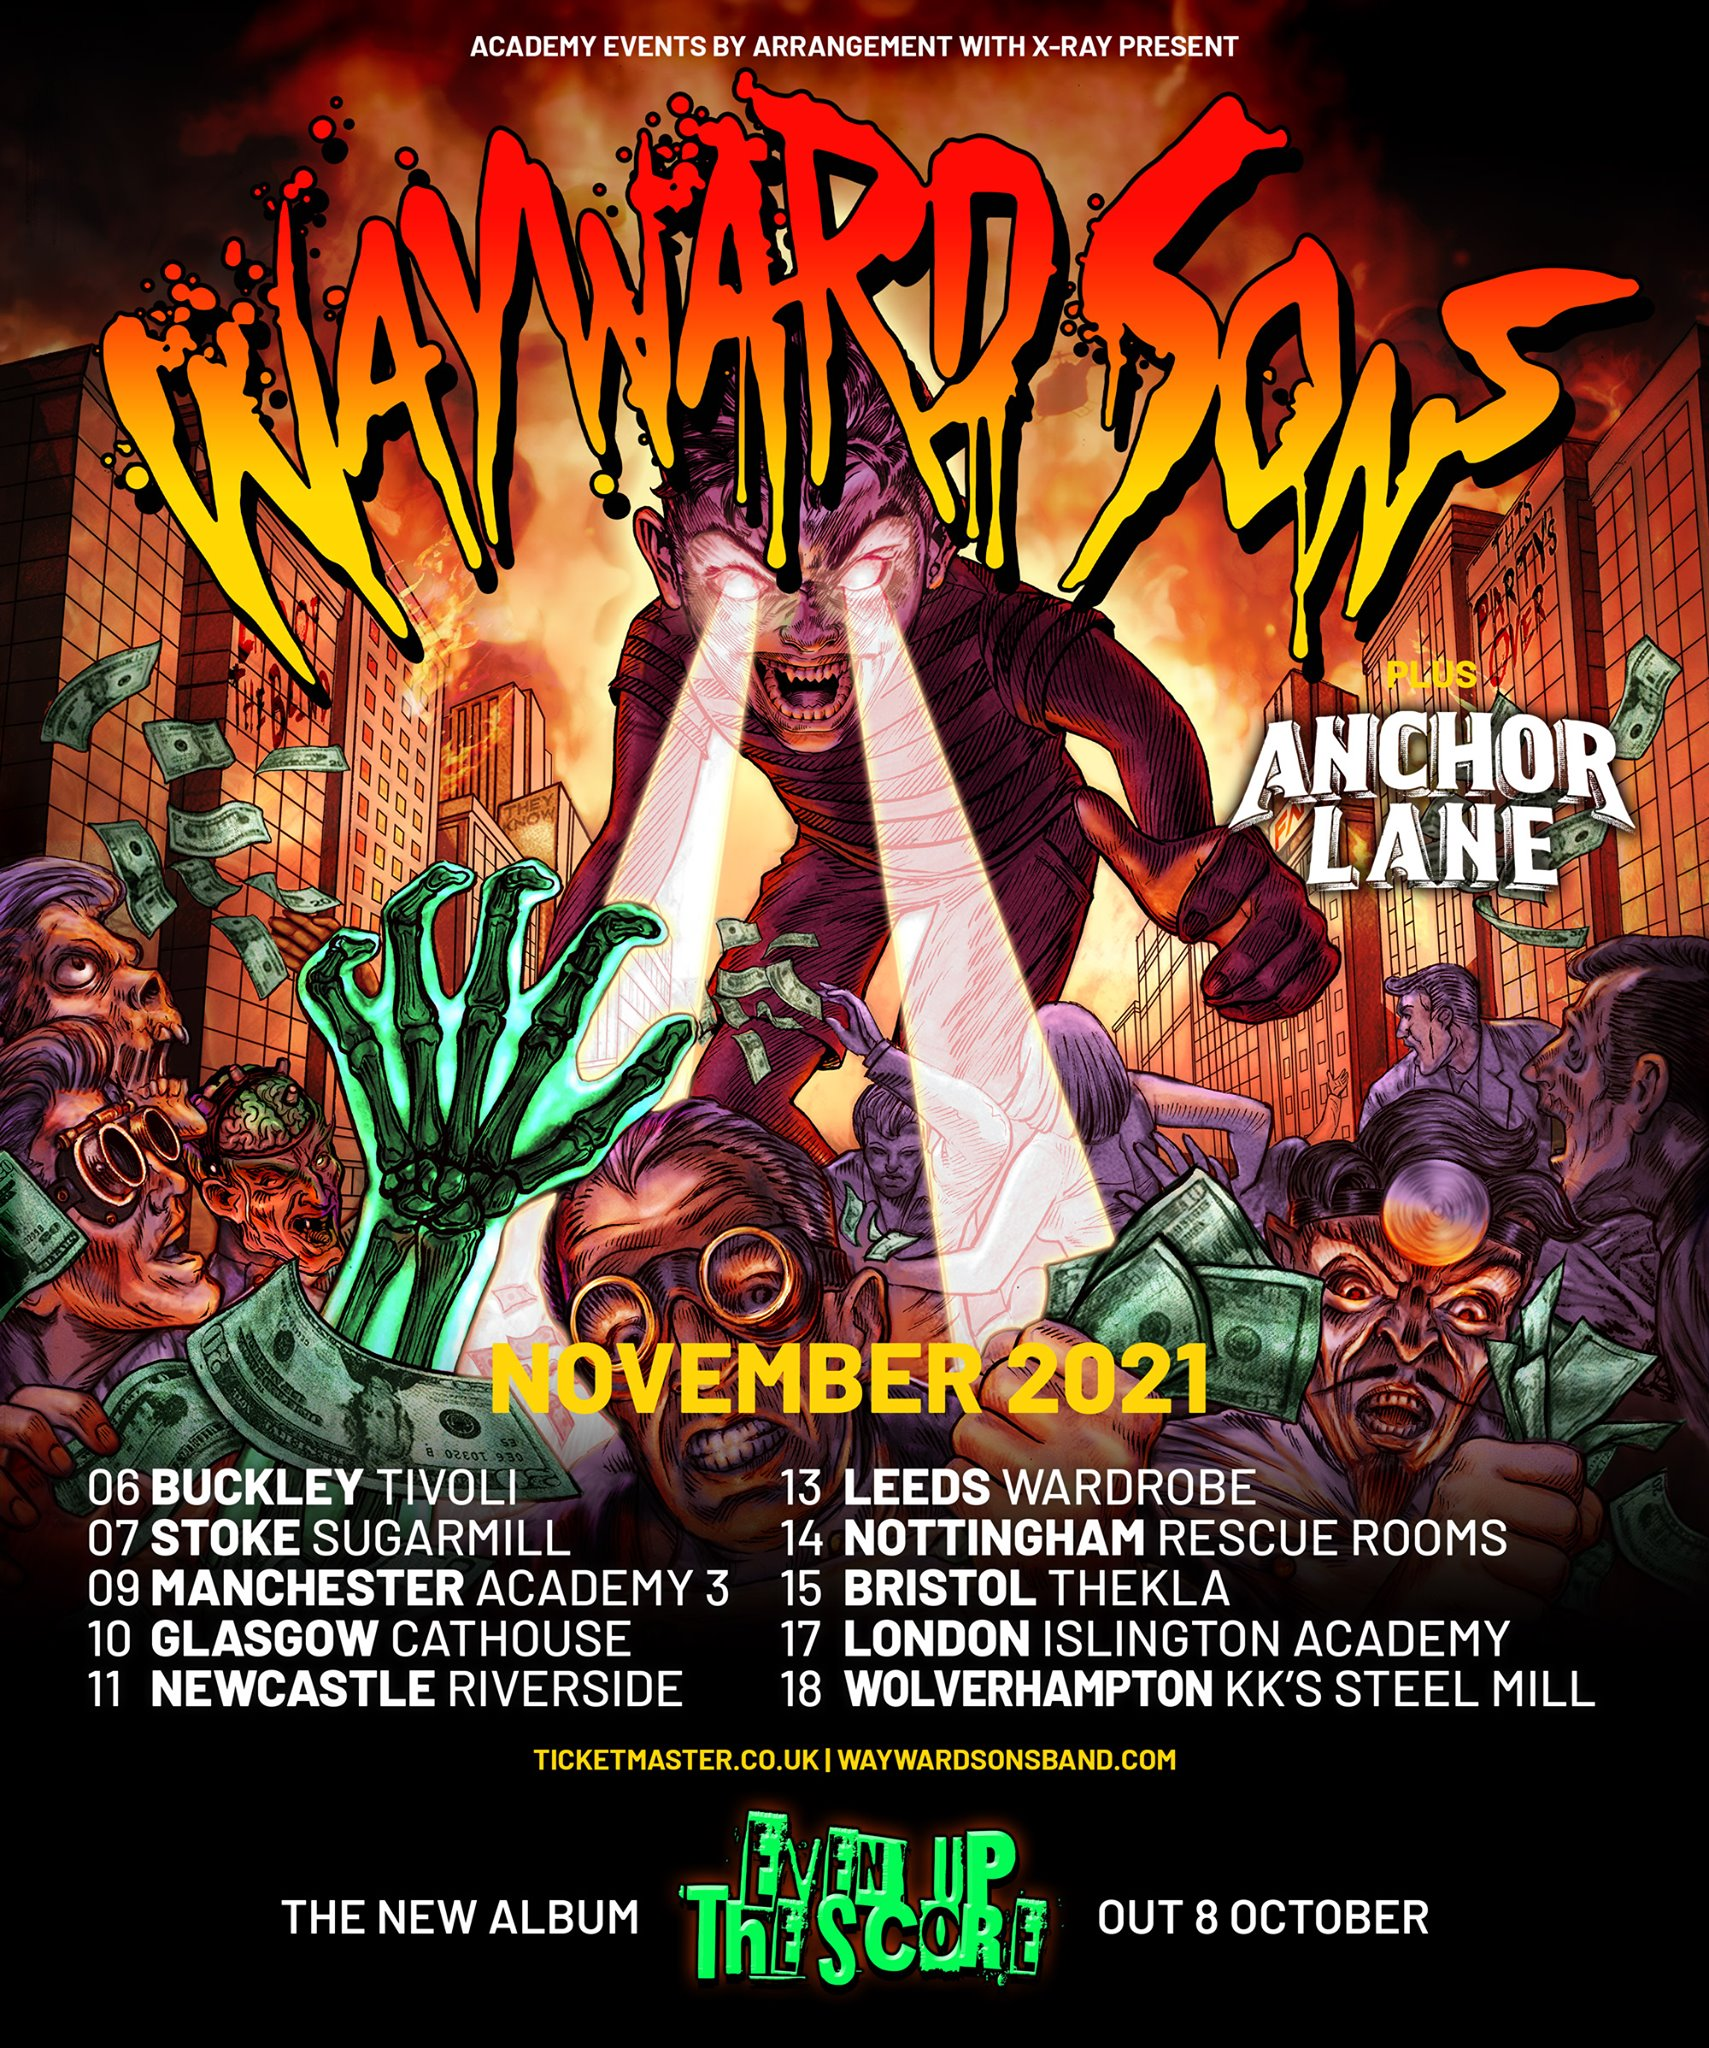 """Wayward Sons, Phil Martini Drummer, Even Up The Score, UK Tour 2021, Toby Jepson, Rock n Roll, Power Pop, 3rd Album, Paiste 2002 Cymbals, Vic Firth 3A Drumsticks, Remo Vintage Emperor Drumheads, Ludwig Vistalite, Candy Cane, Swirly, Cherry & Amber, Ludwig Black Beauty, Tama Iron Cobra Pedals, Meinl 8"""" Cowbell, Joe Elliott's Down N Outz, X-Ray Touring, Frontiers Music, Yamaha Guitars, Anchor Lane"""